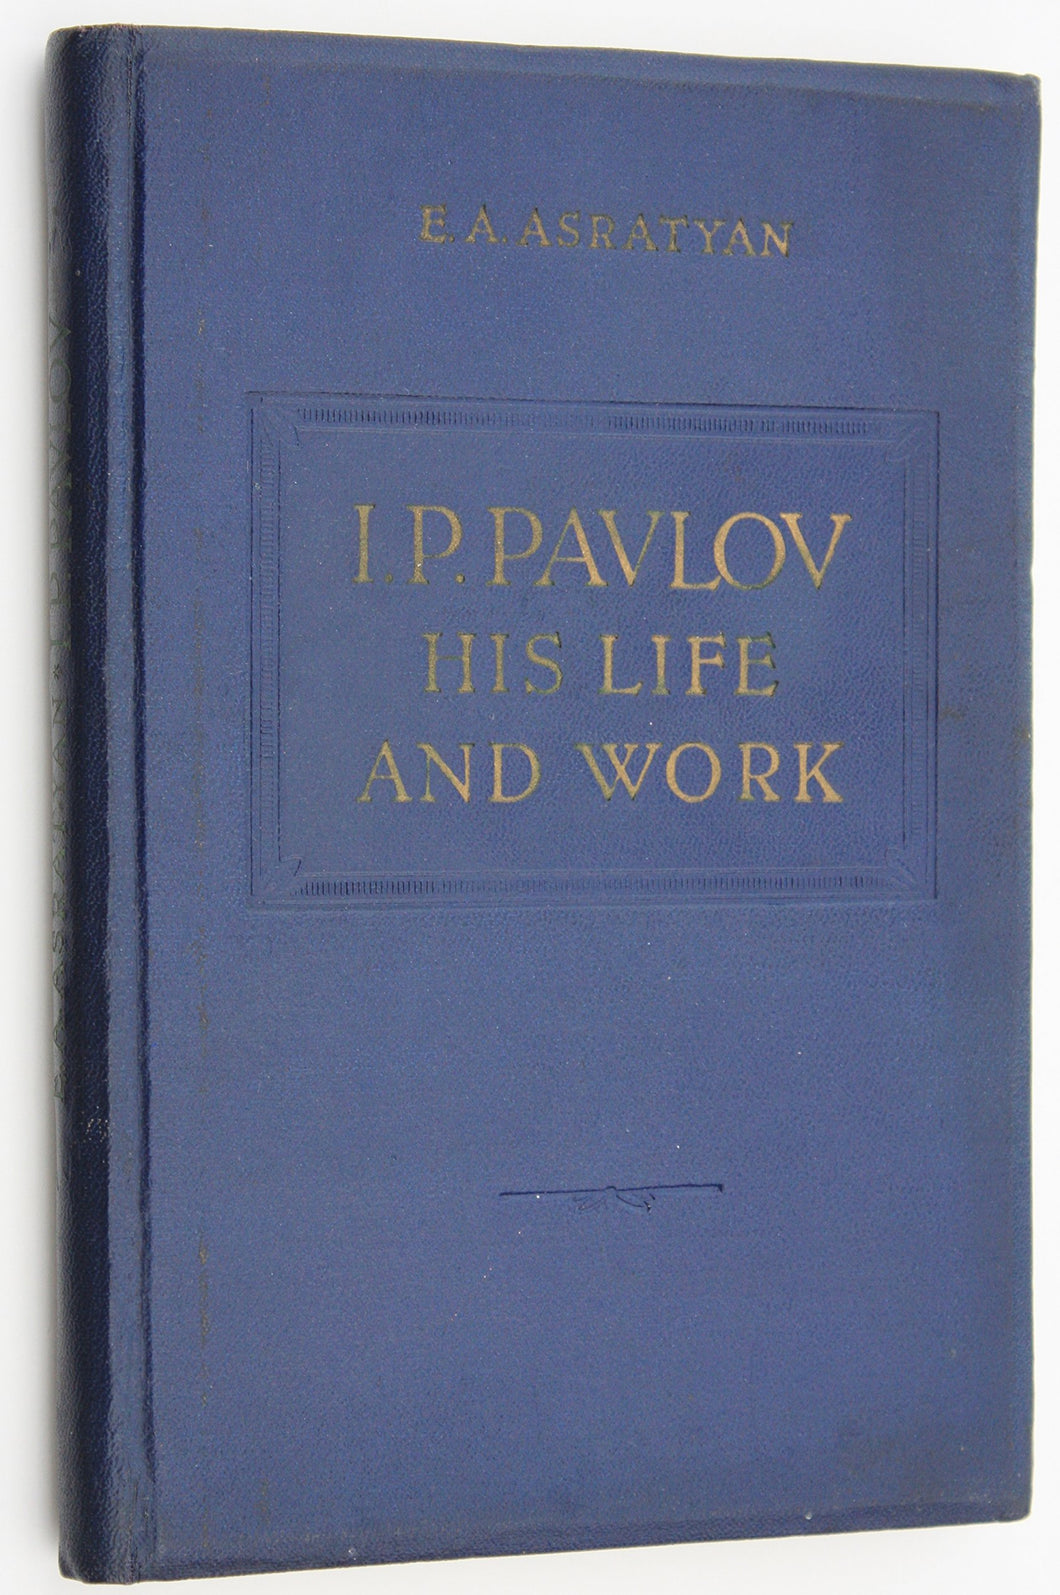 I.P. Pavlov: His Life and Work